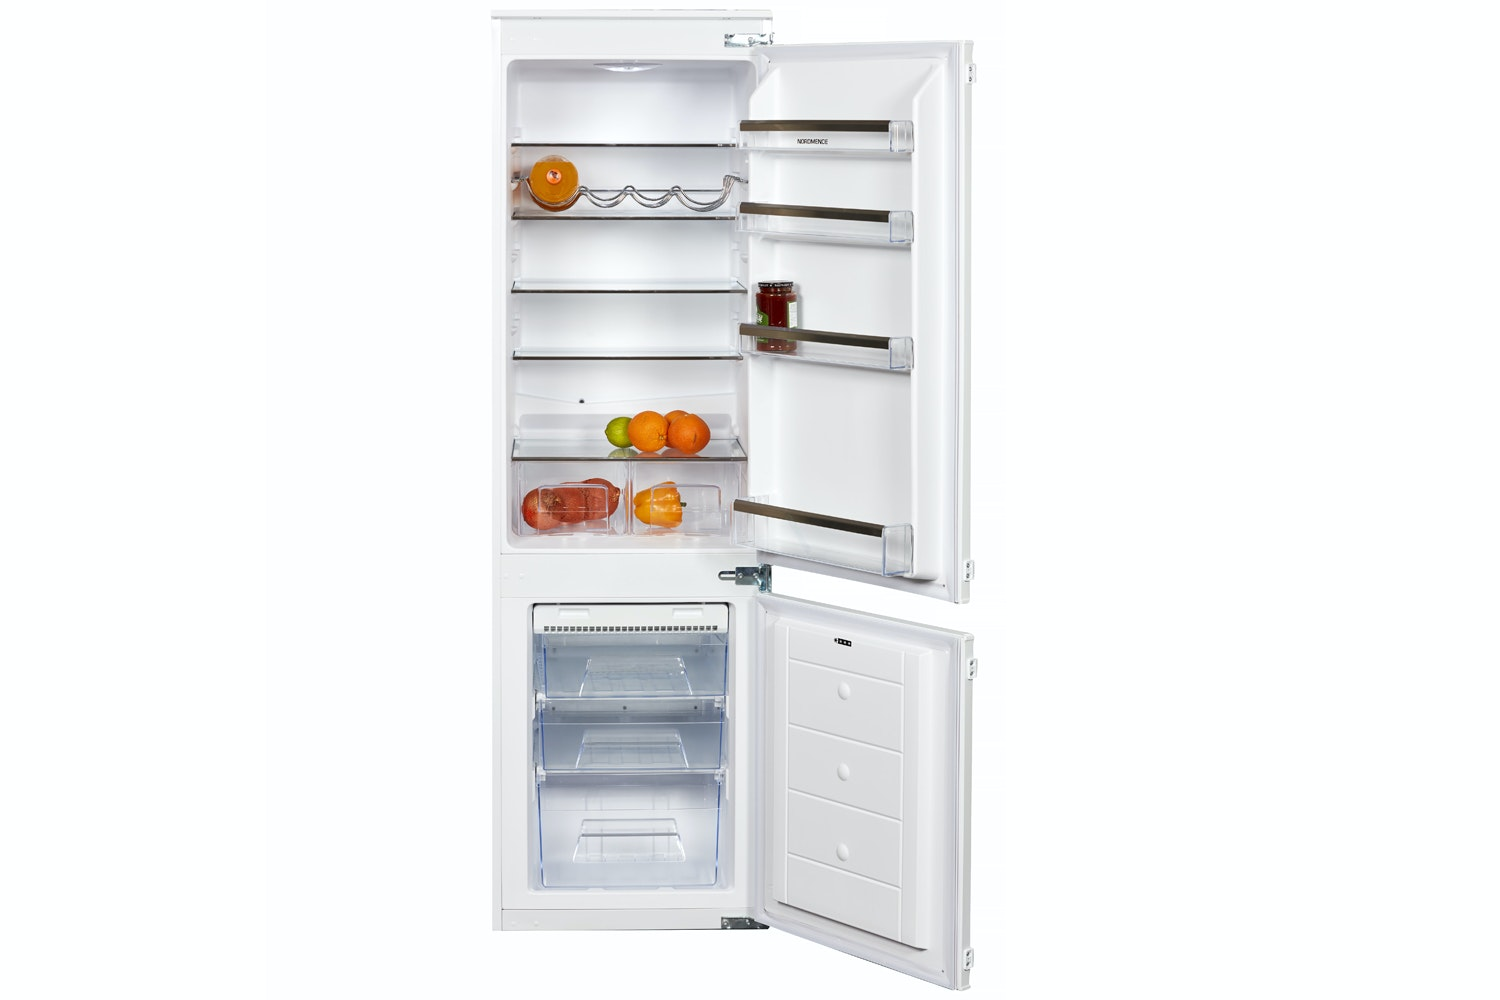 nordmende integrated fridge freezer riff70301nf